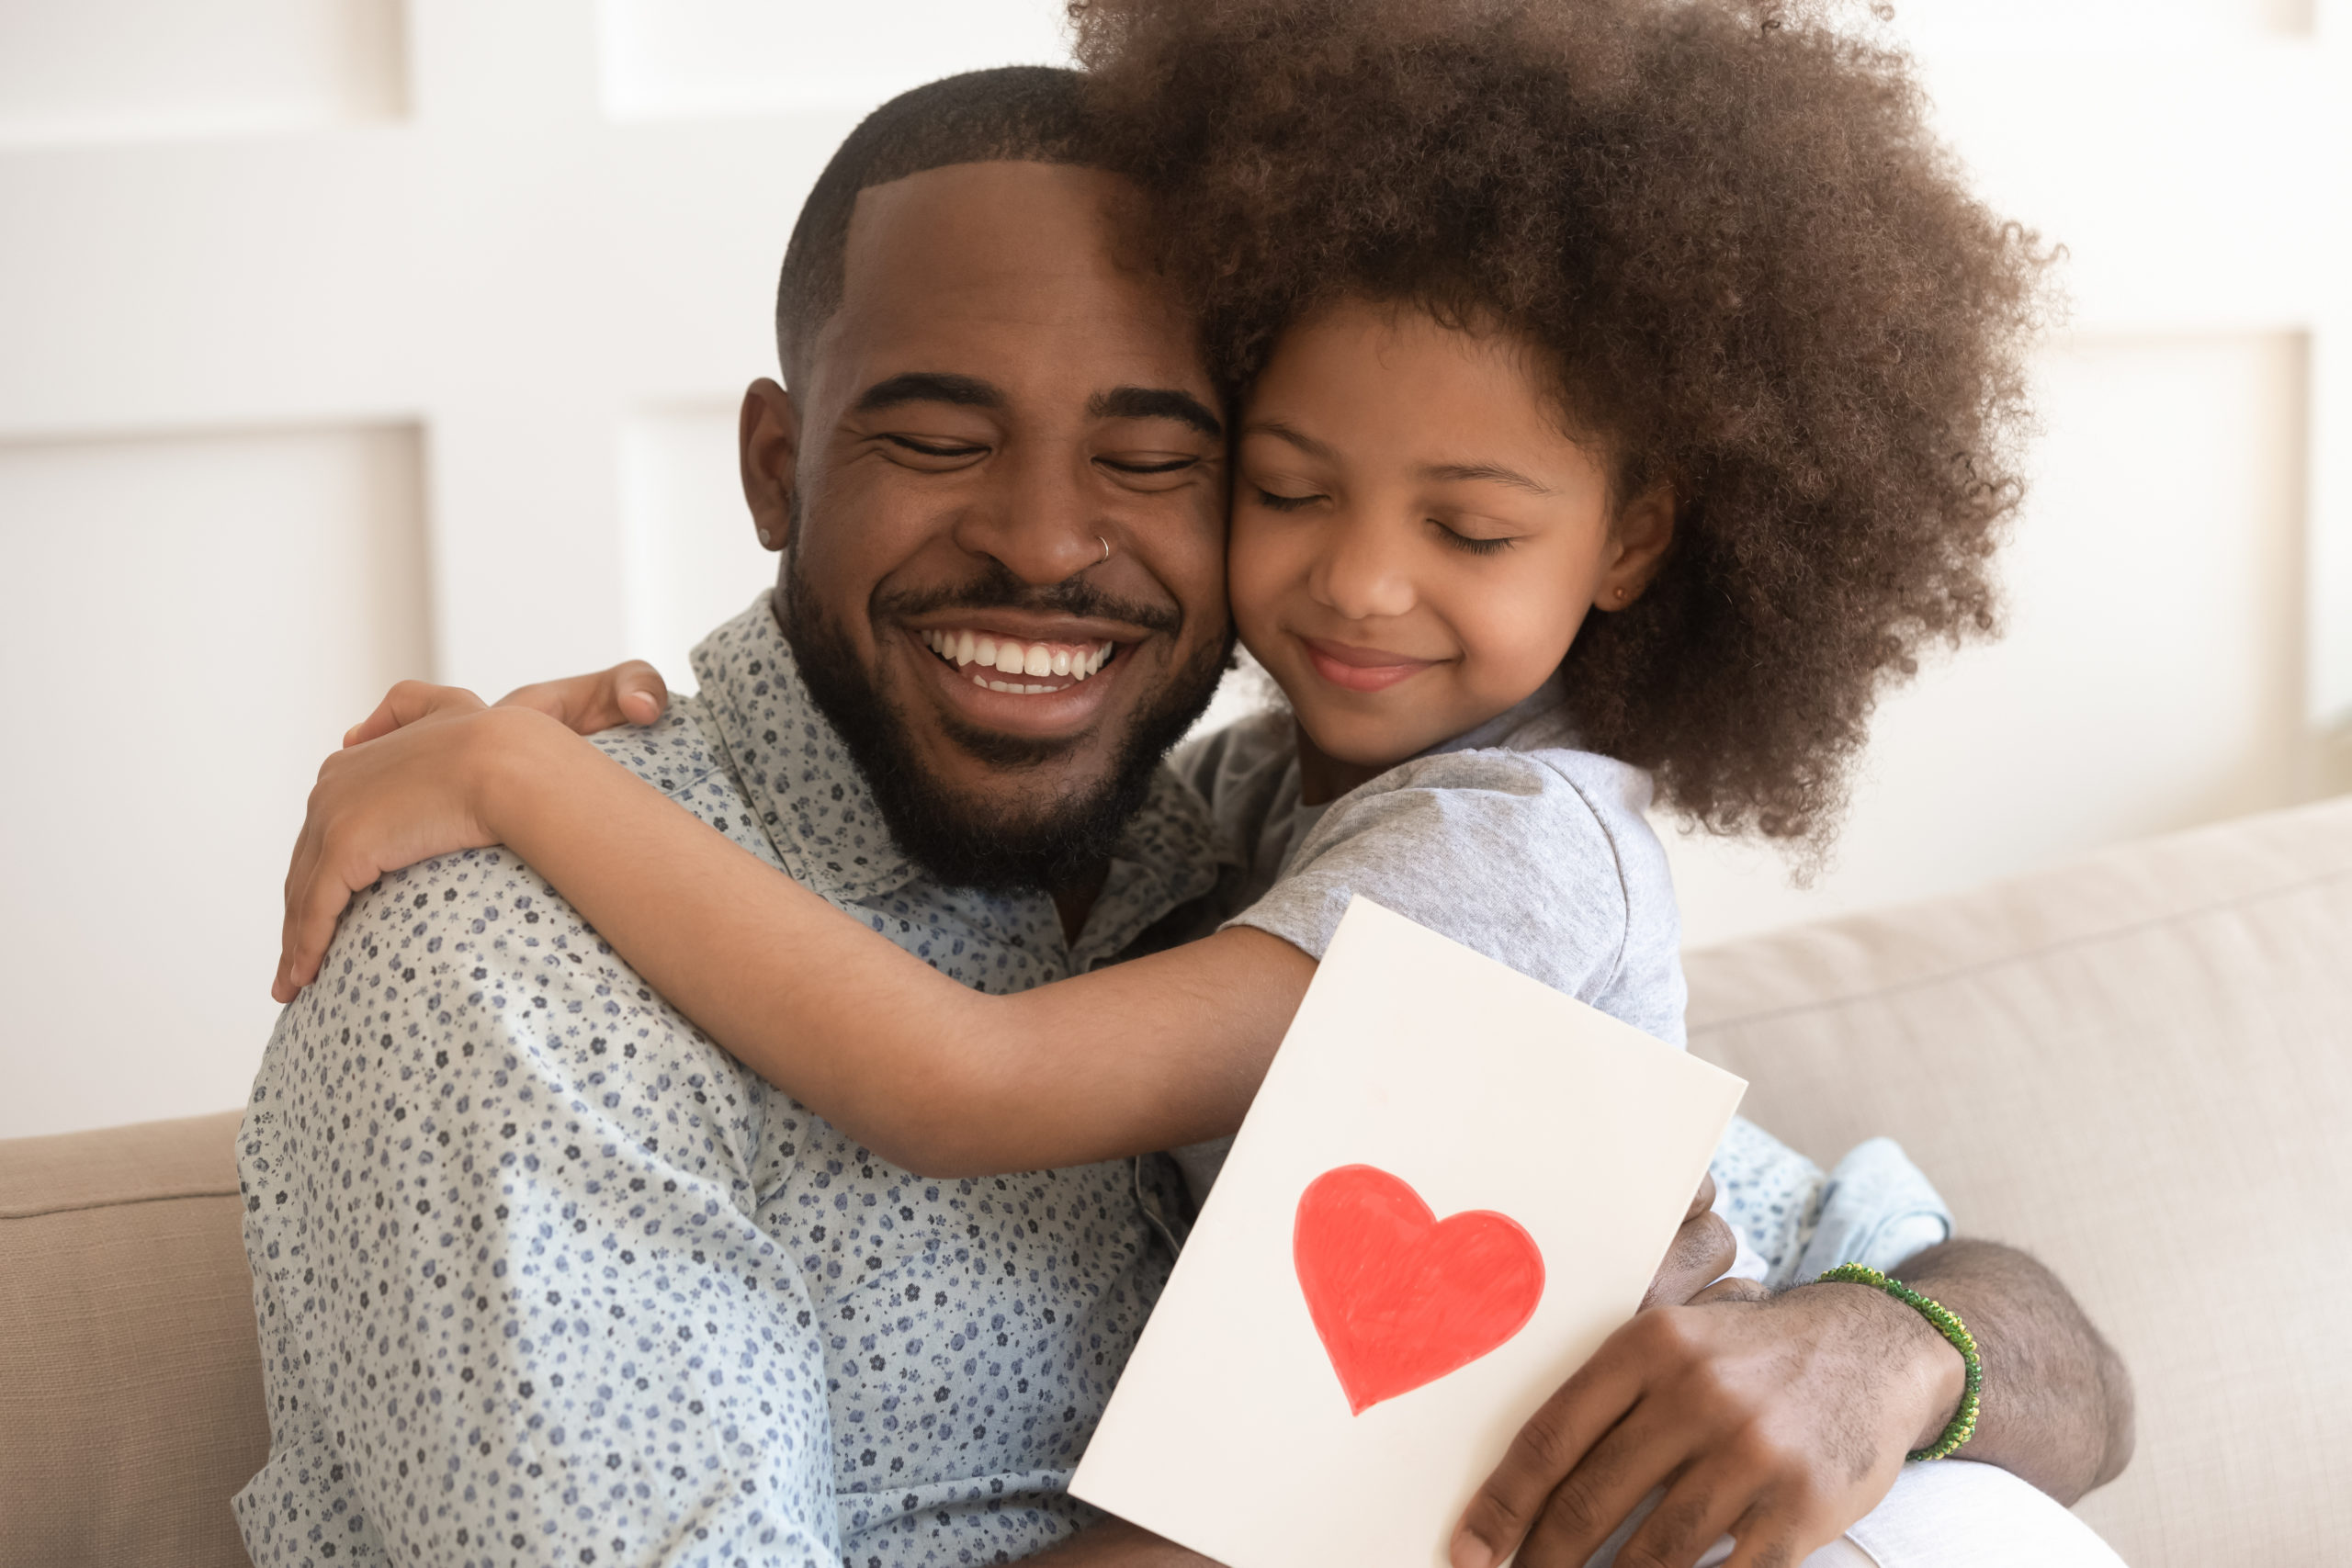 A black man hugging his black son while holding a card with a red heart painted on it